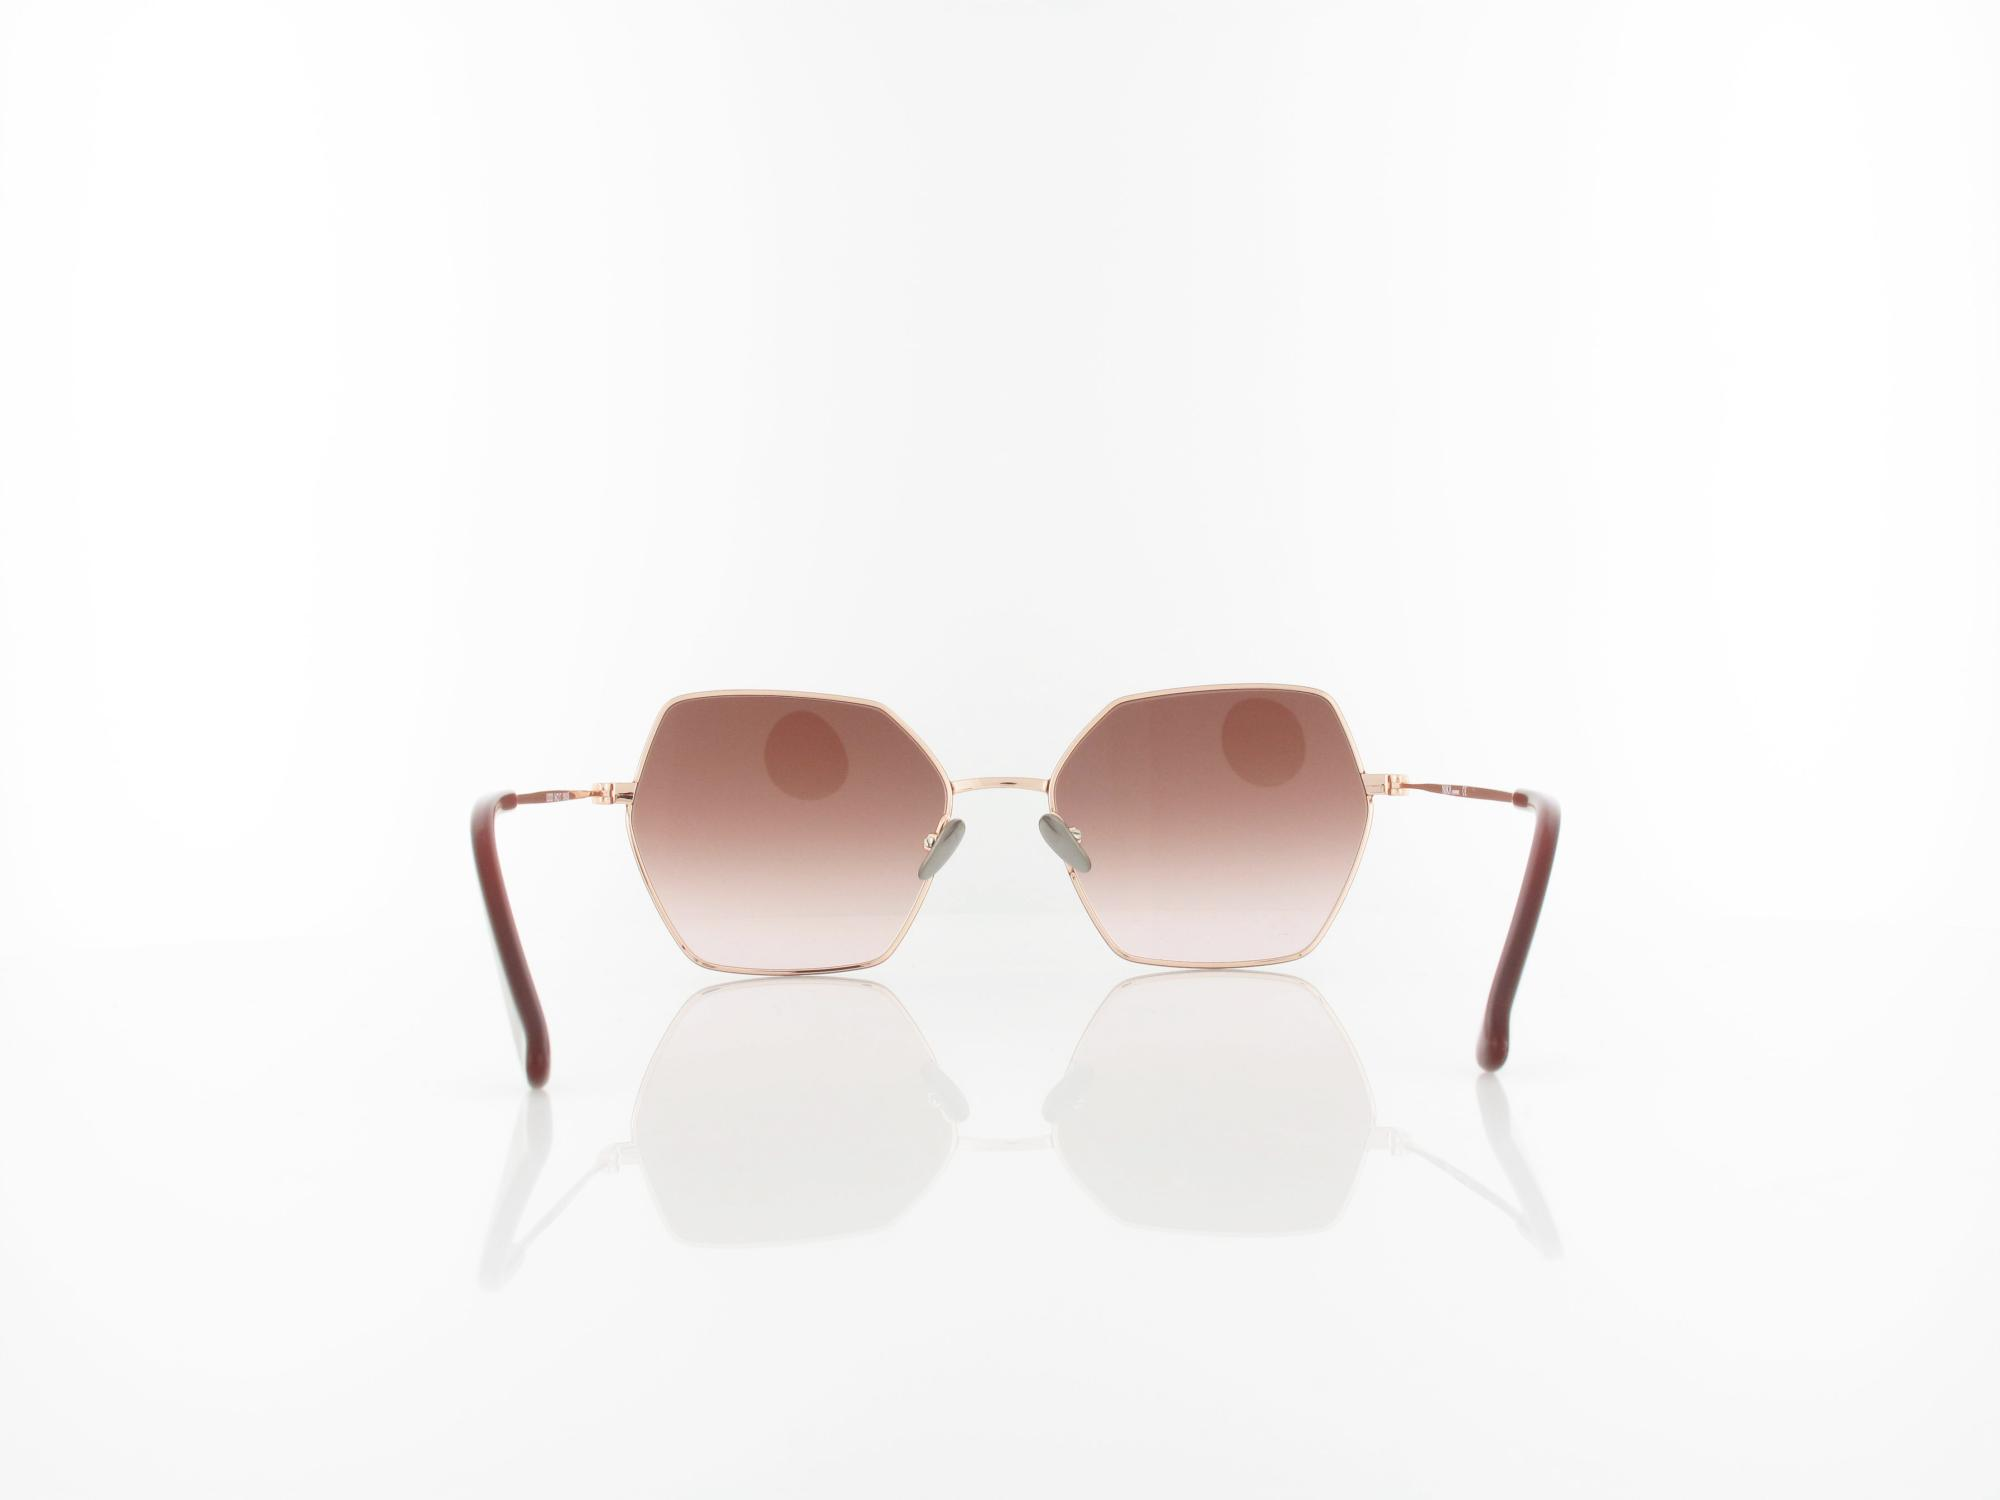 Brilando | Premium Urban U2020 54 | red rosegold / brown gradient